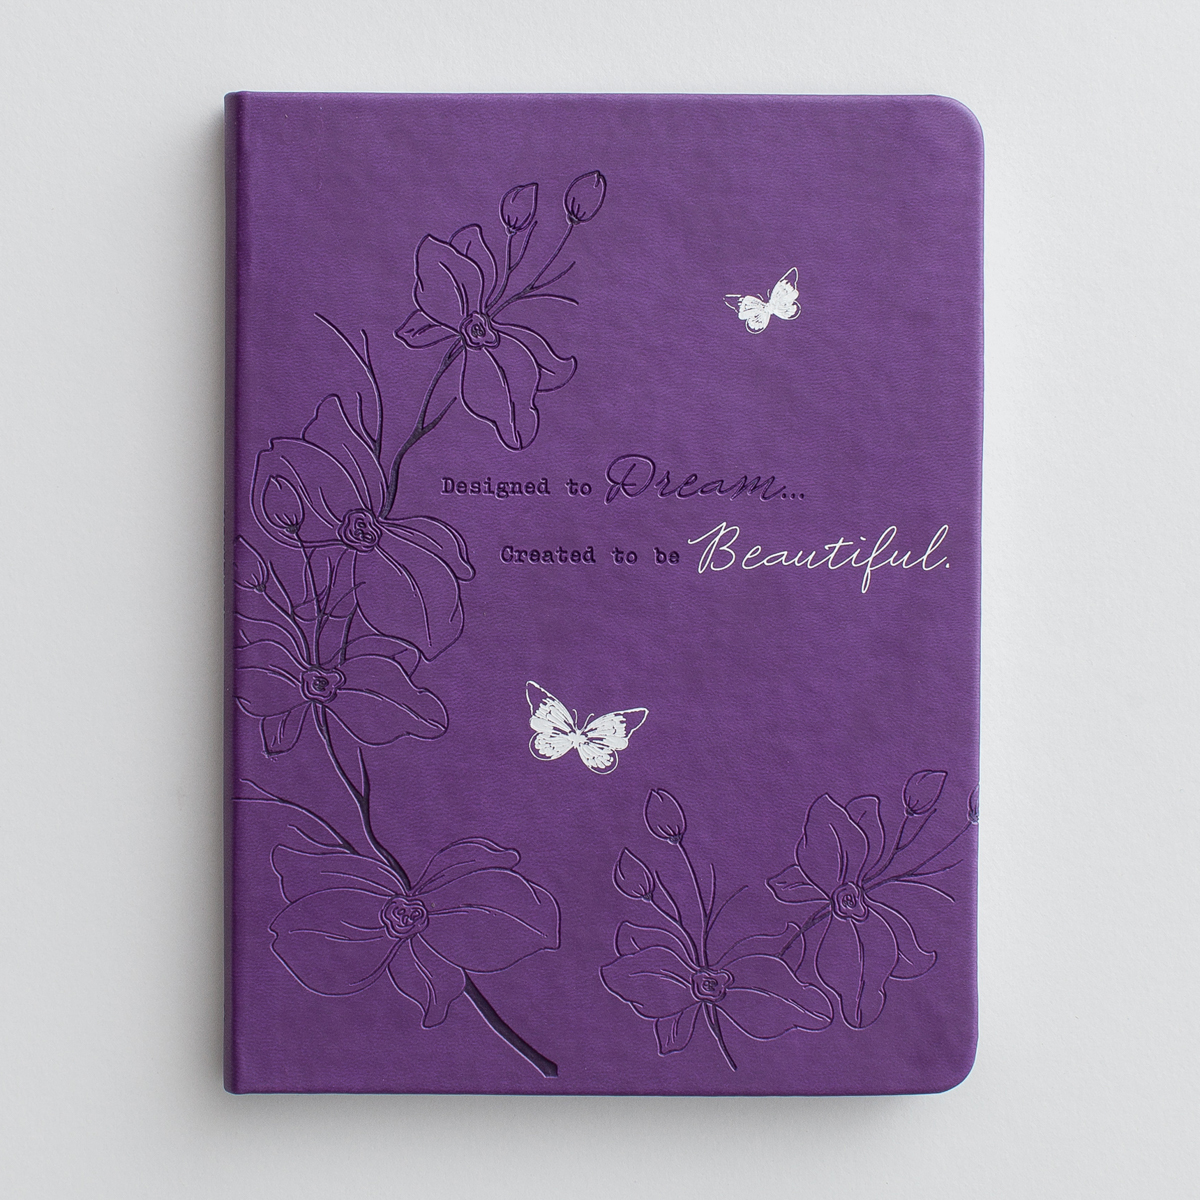 Christian Journals for her